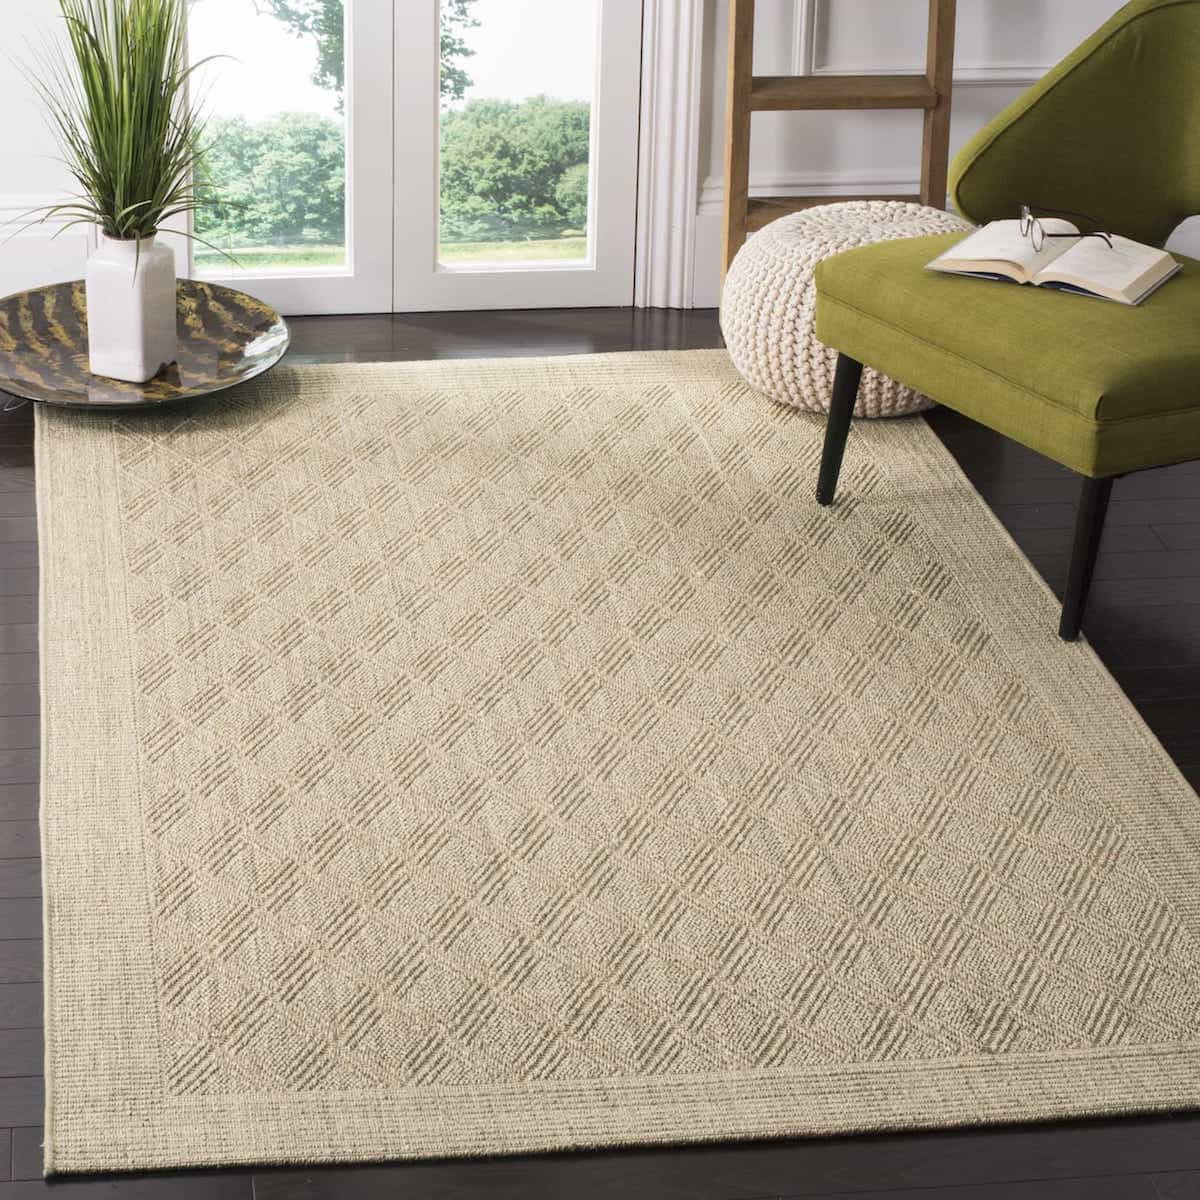 10×14 Neutral Brown Sisal Rug For Living Room Area (Image 1 of 15)